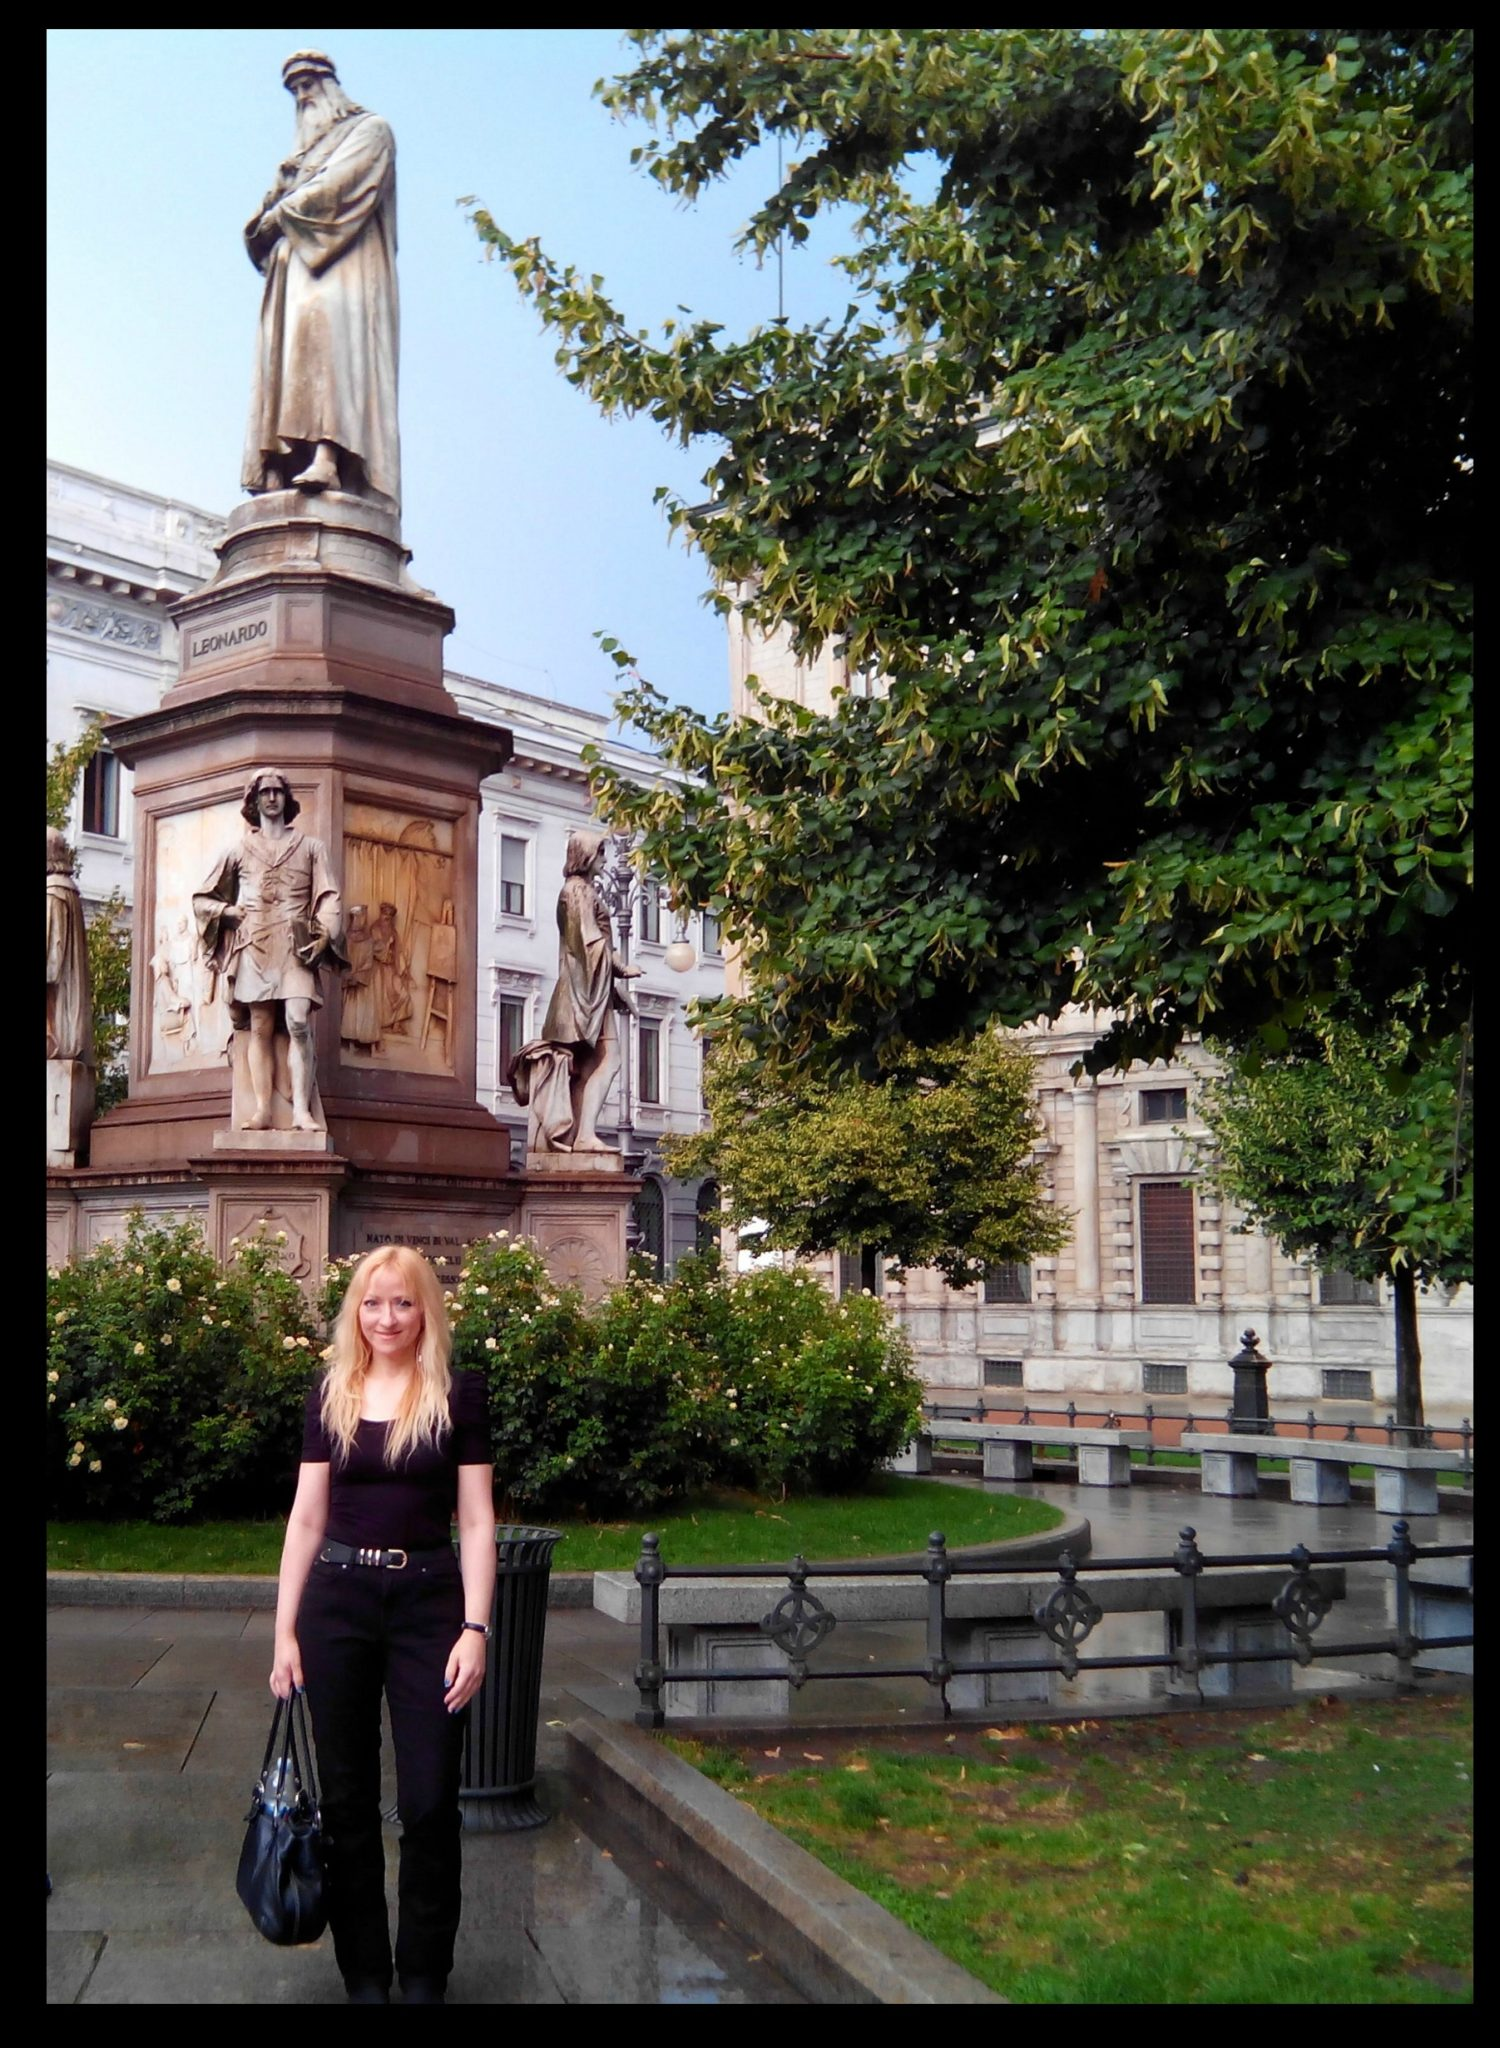 Connie Yerbic, Traveling to recording studio, Italy